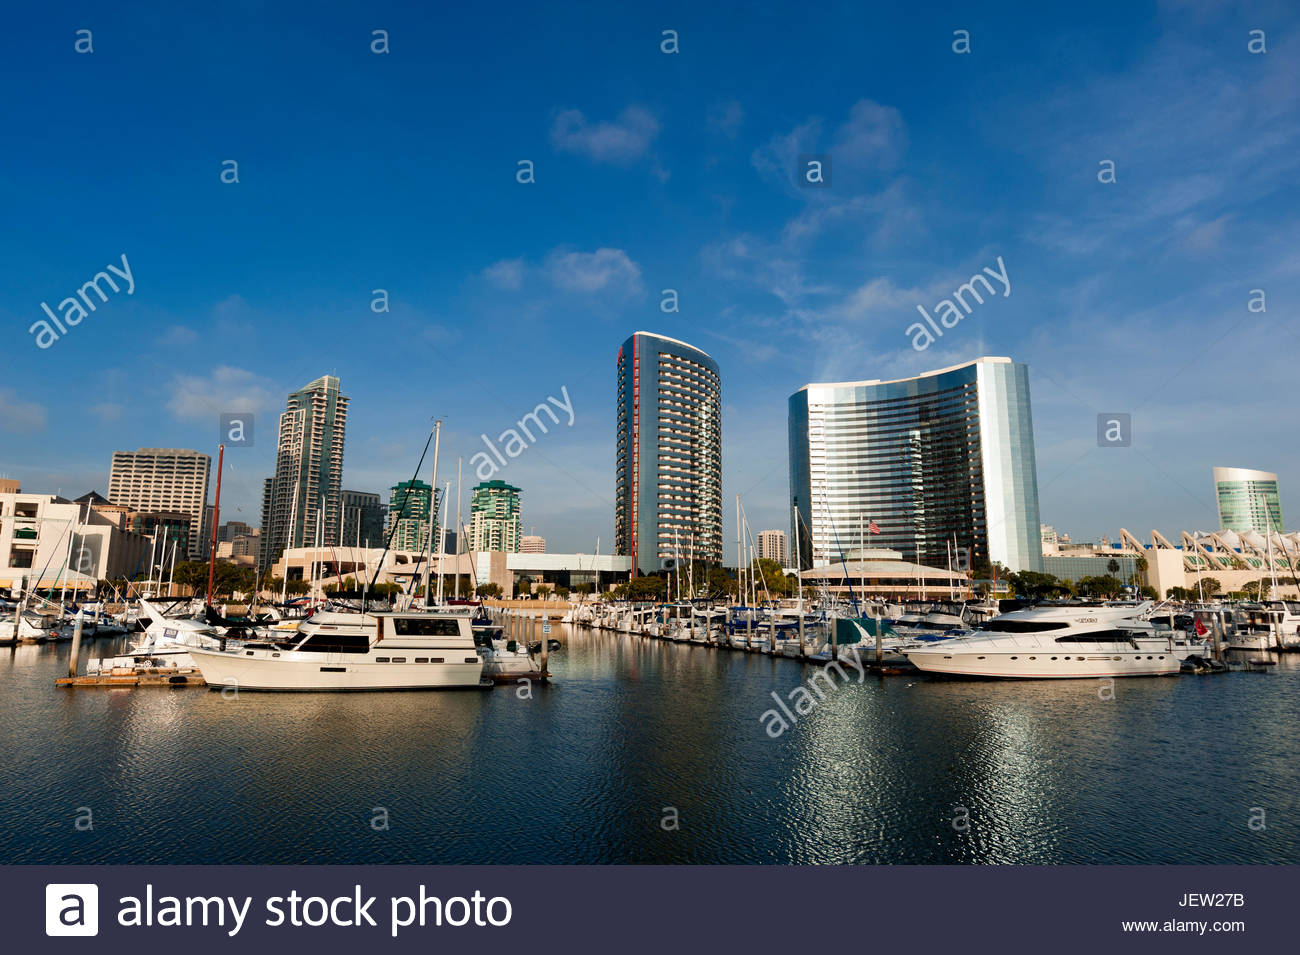 A view boats anchored in a marina and the San Diego skyline. - Stock Image